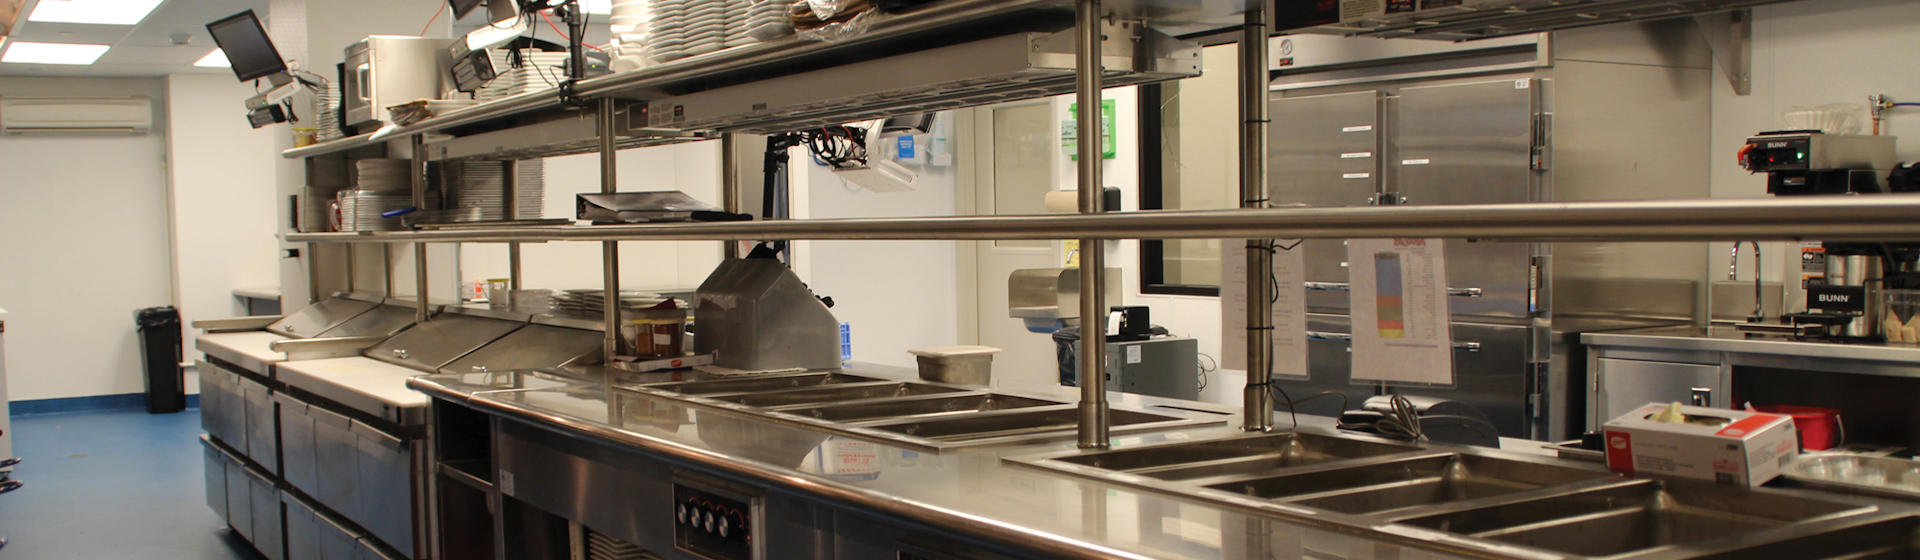 Top Quality Food Service Equipment